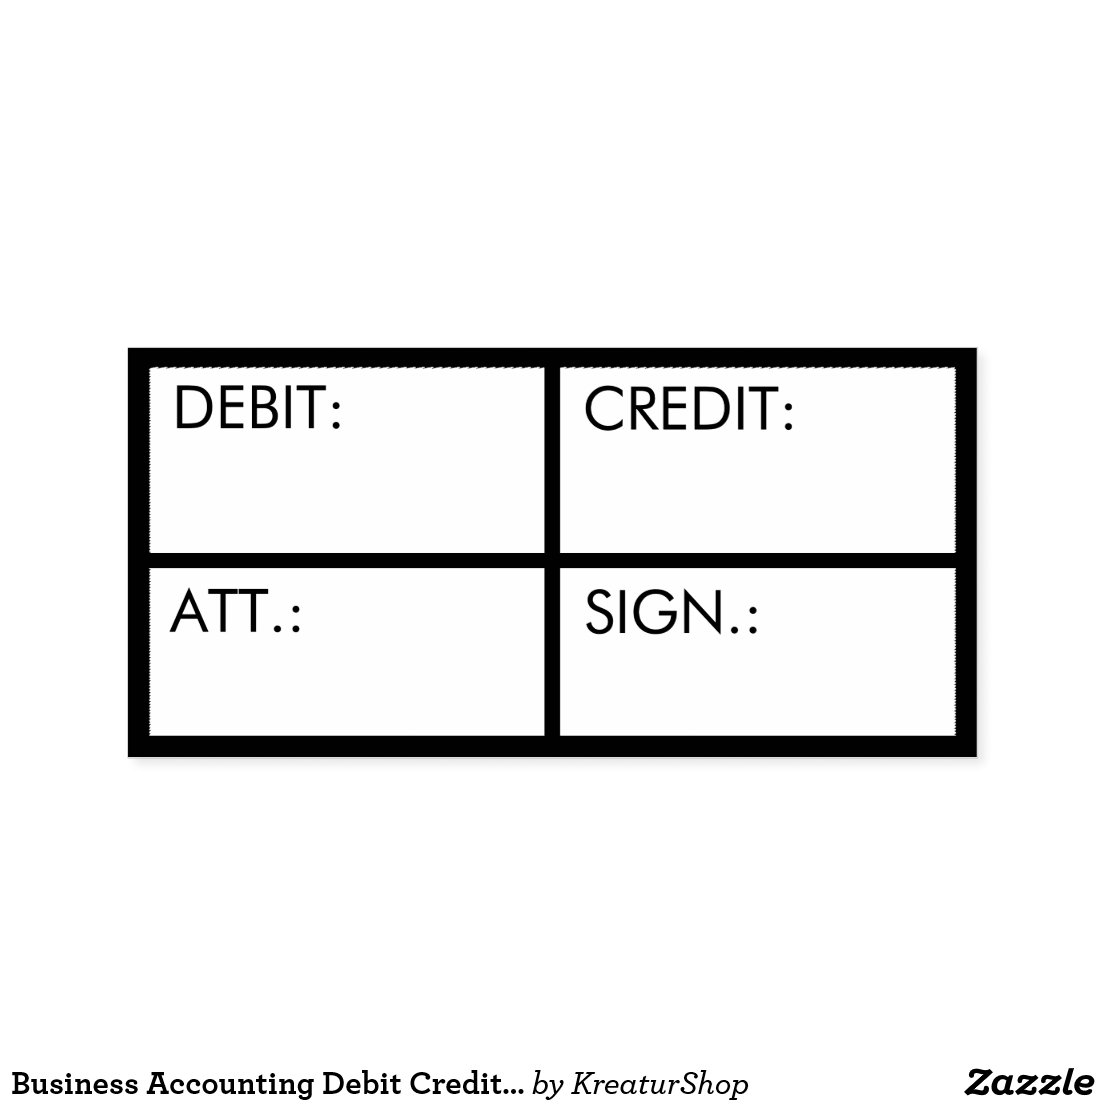 Business Accounting Debit Credit Custom